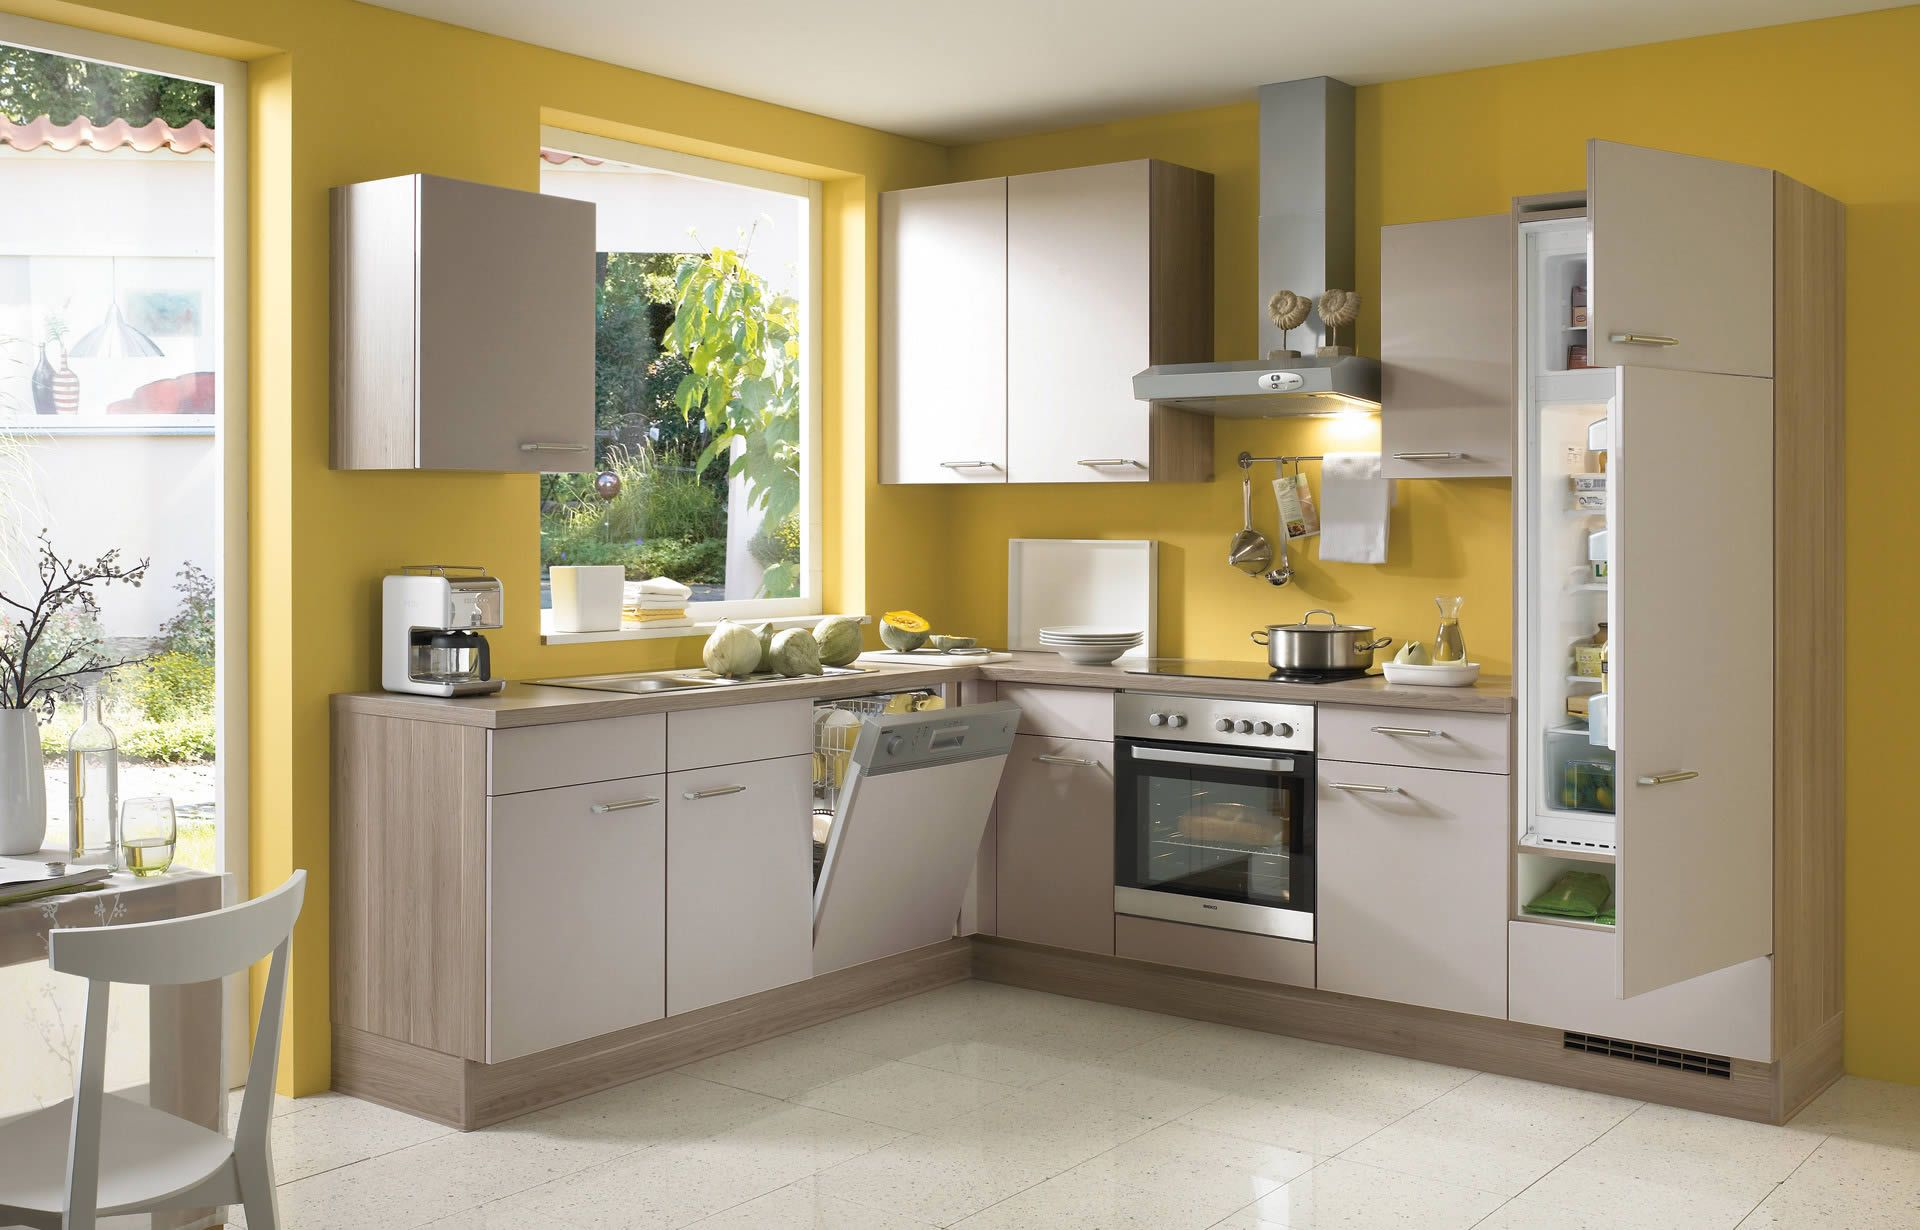 Nice Yellow Walls In Kitchen 2 With Grey Cabinets David